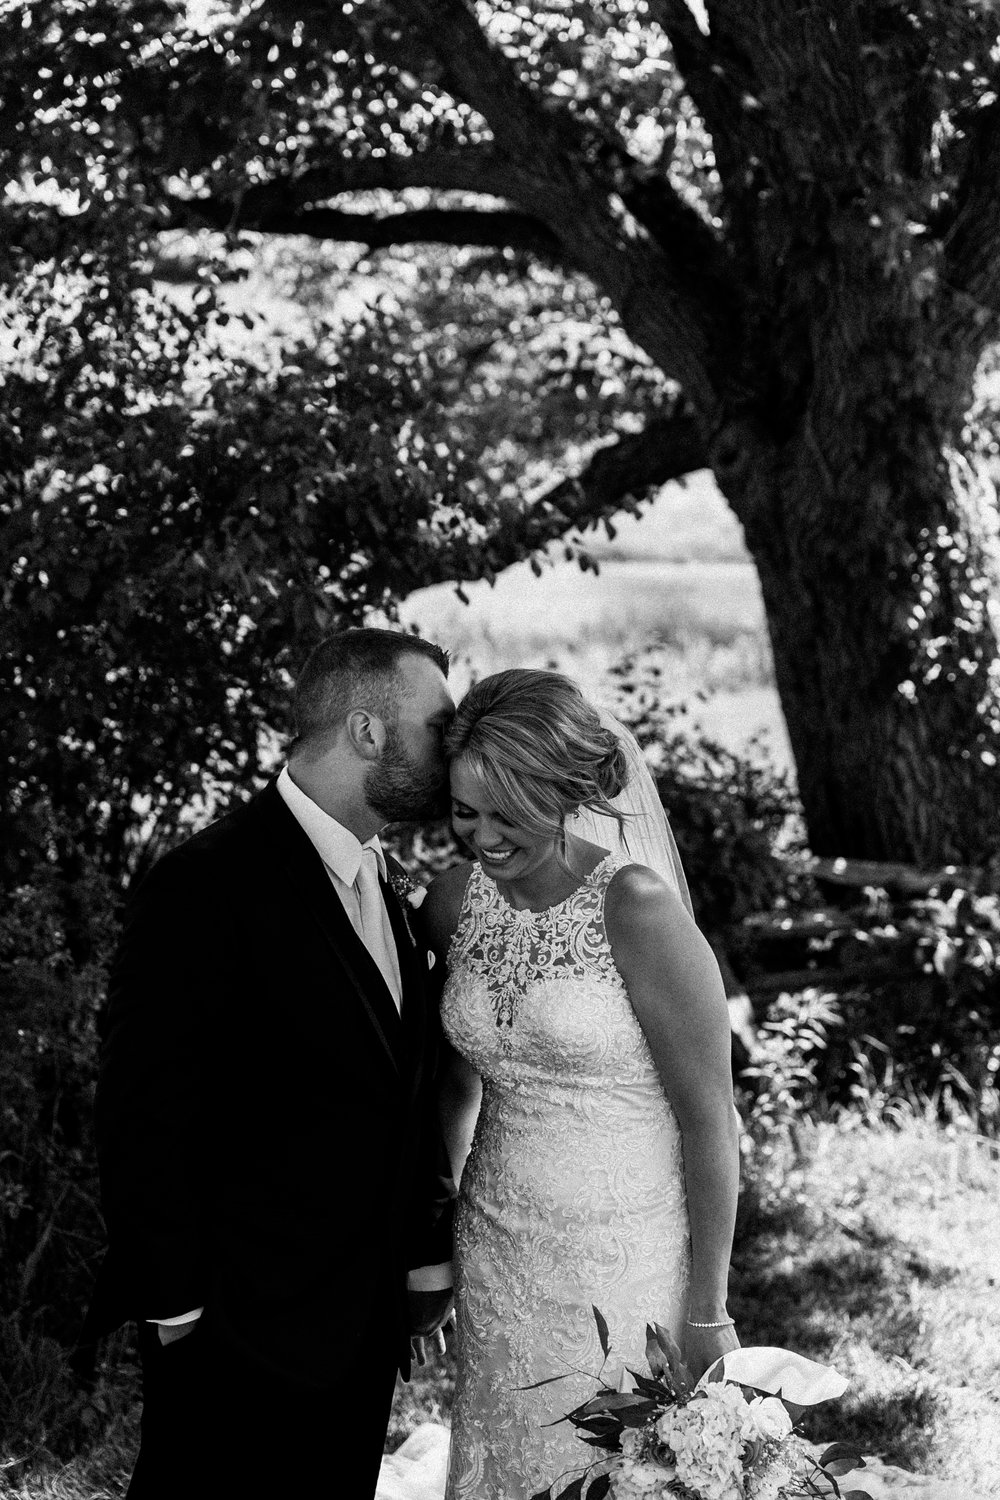 CrystalJessupPhotographyTheQuarry-Carly&Landon (220 of 558).jpg